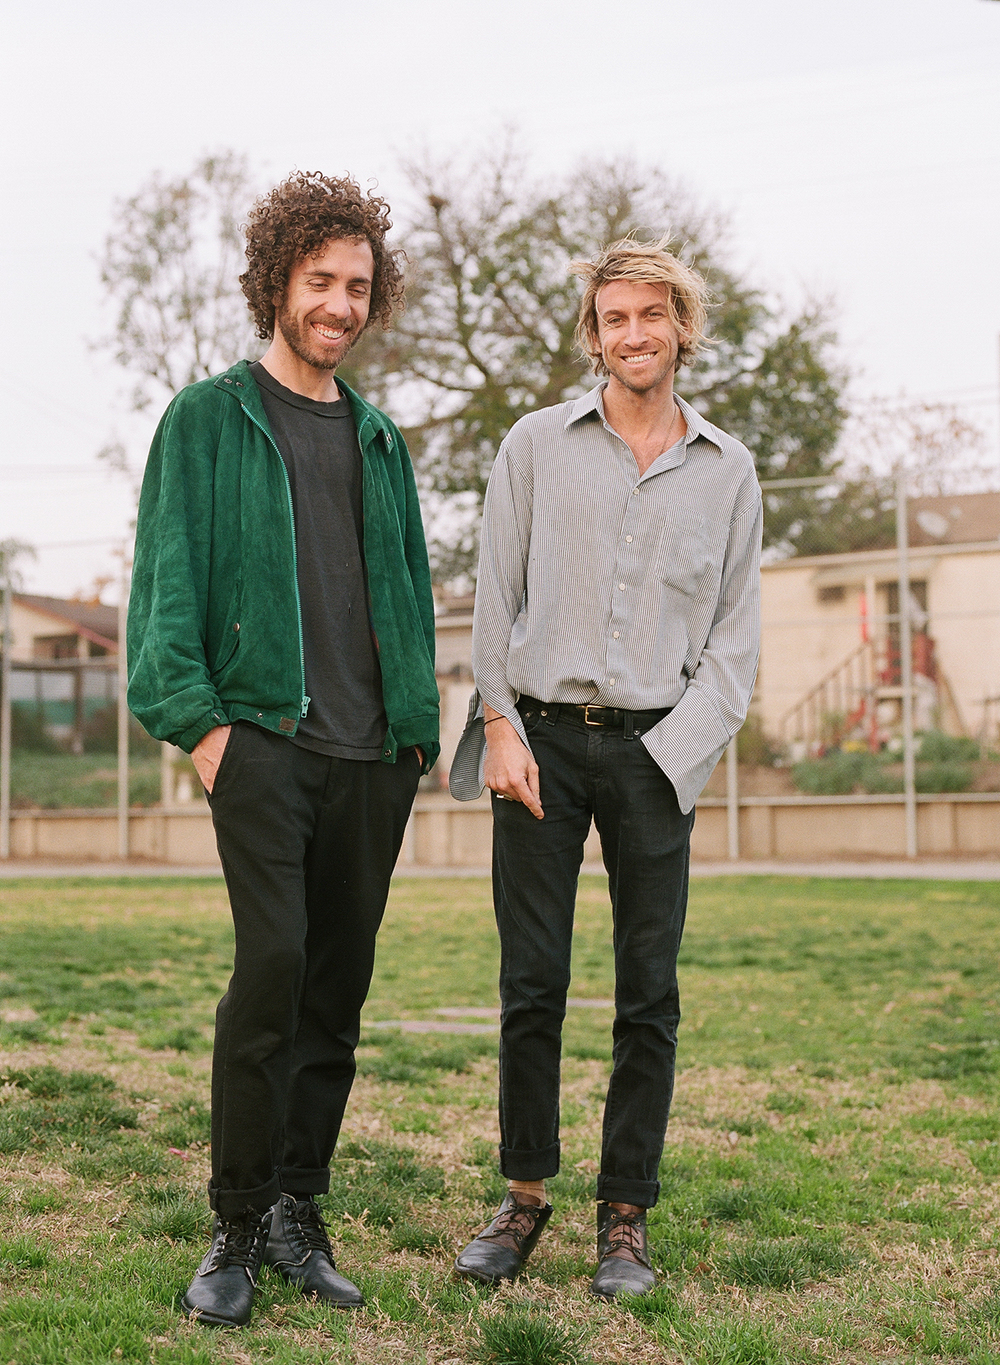 SWIMM - Residency band portrait series for The Echo. Photographed in Lincoln Heights,CA in Jan. 2016.